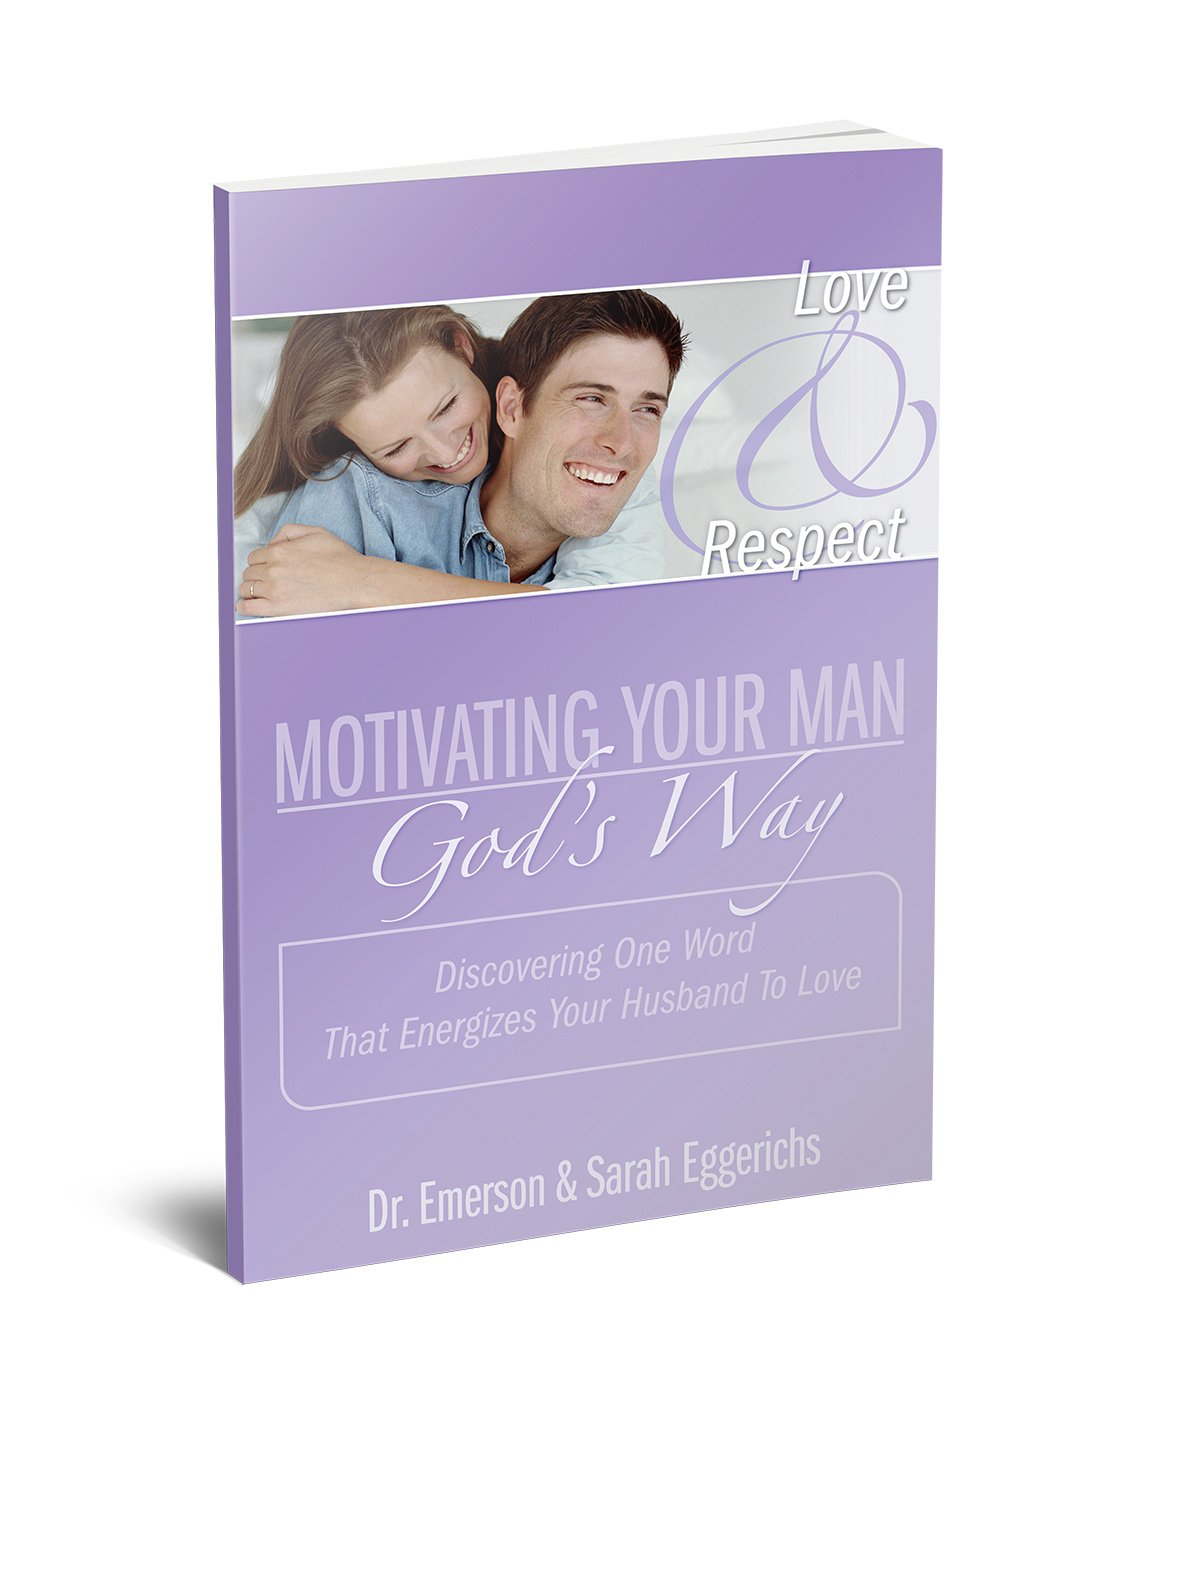 Motivating Your Man, God's Way (Discovering One Word That Energizes Your Husband To Love) pdf